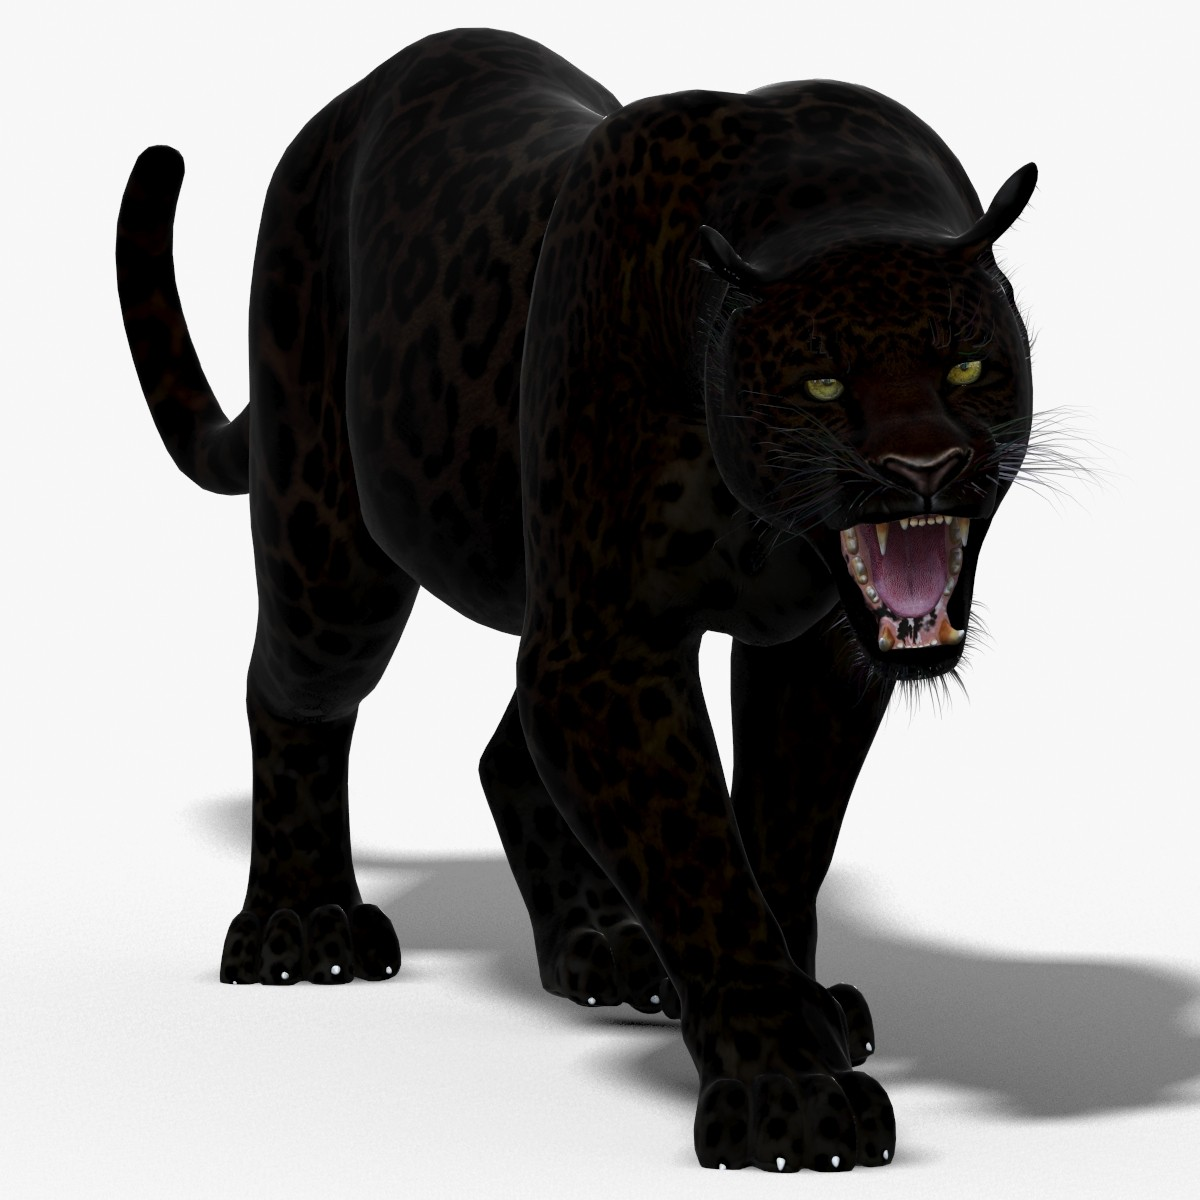 Panther-3D-model-animated-00.jpg